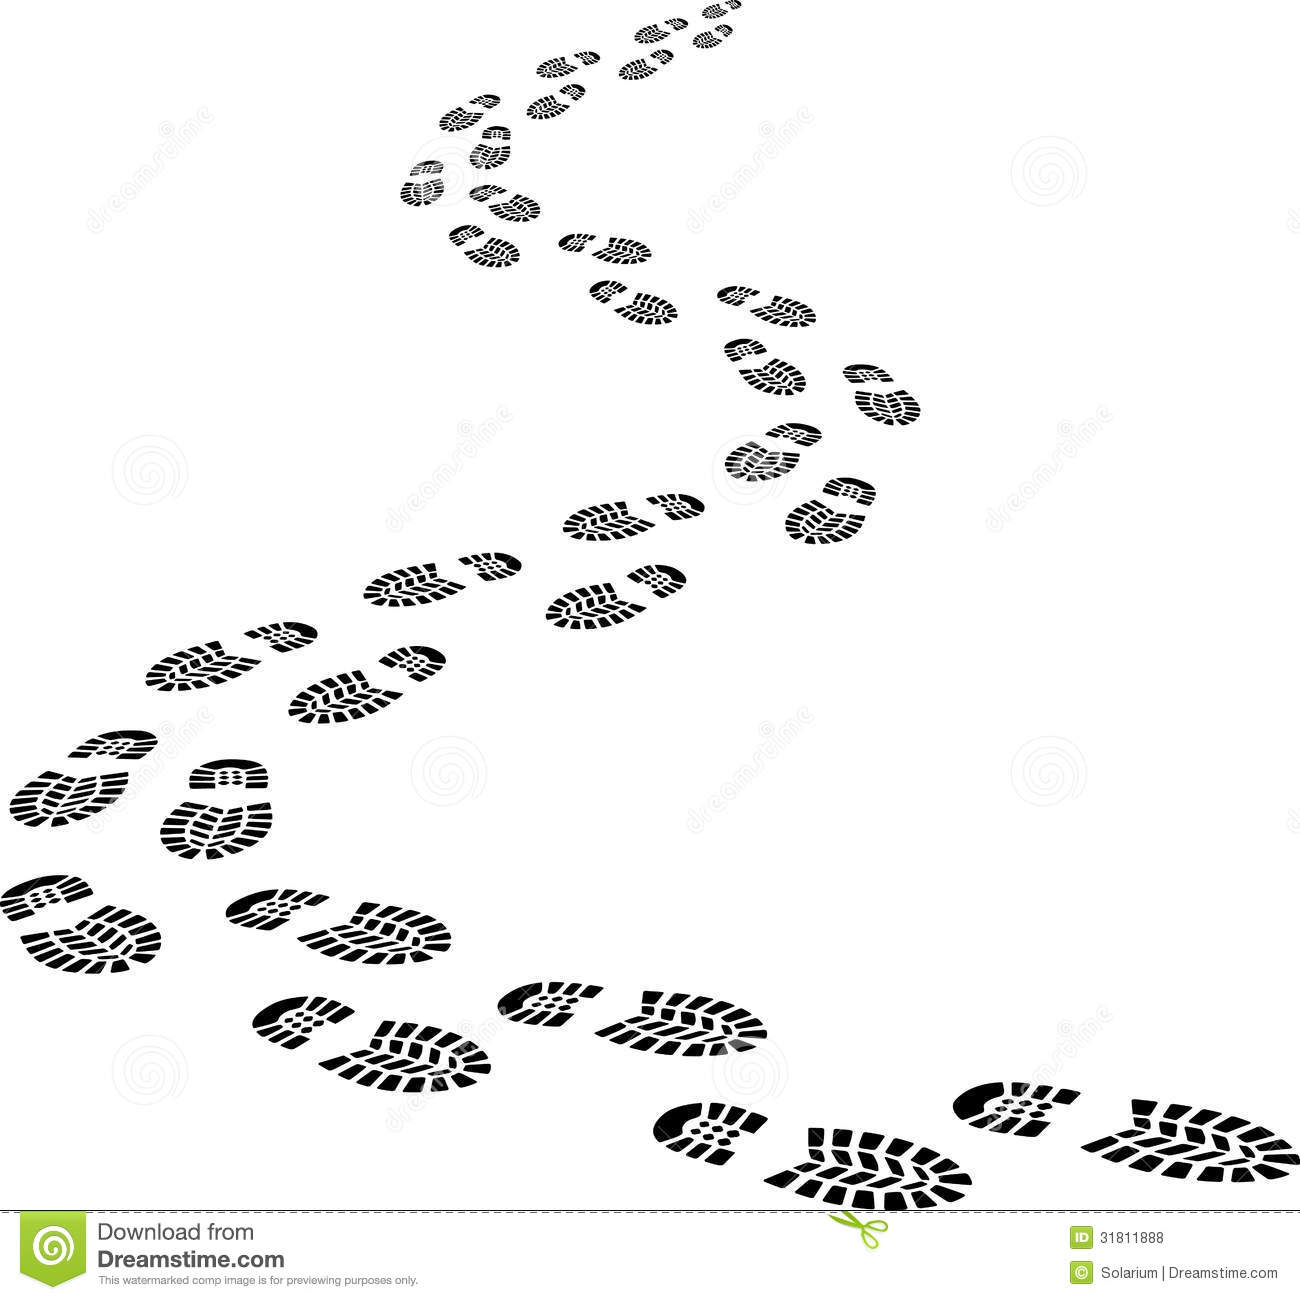 Walking Footprints Clipart - Clipart Kid